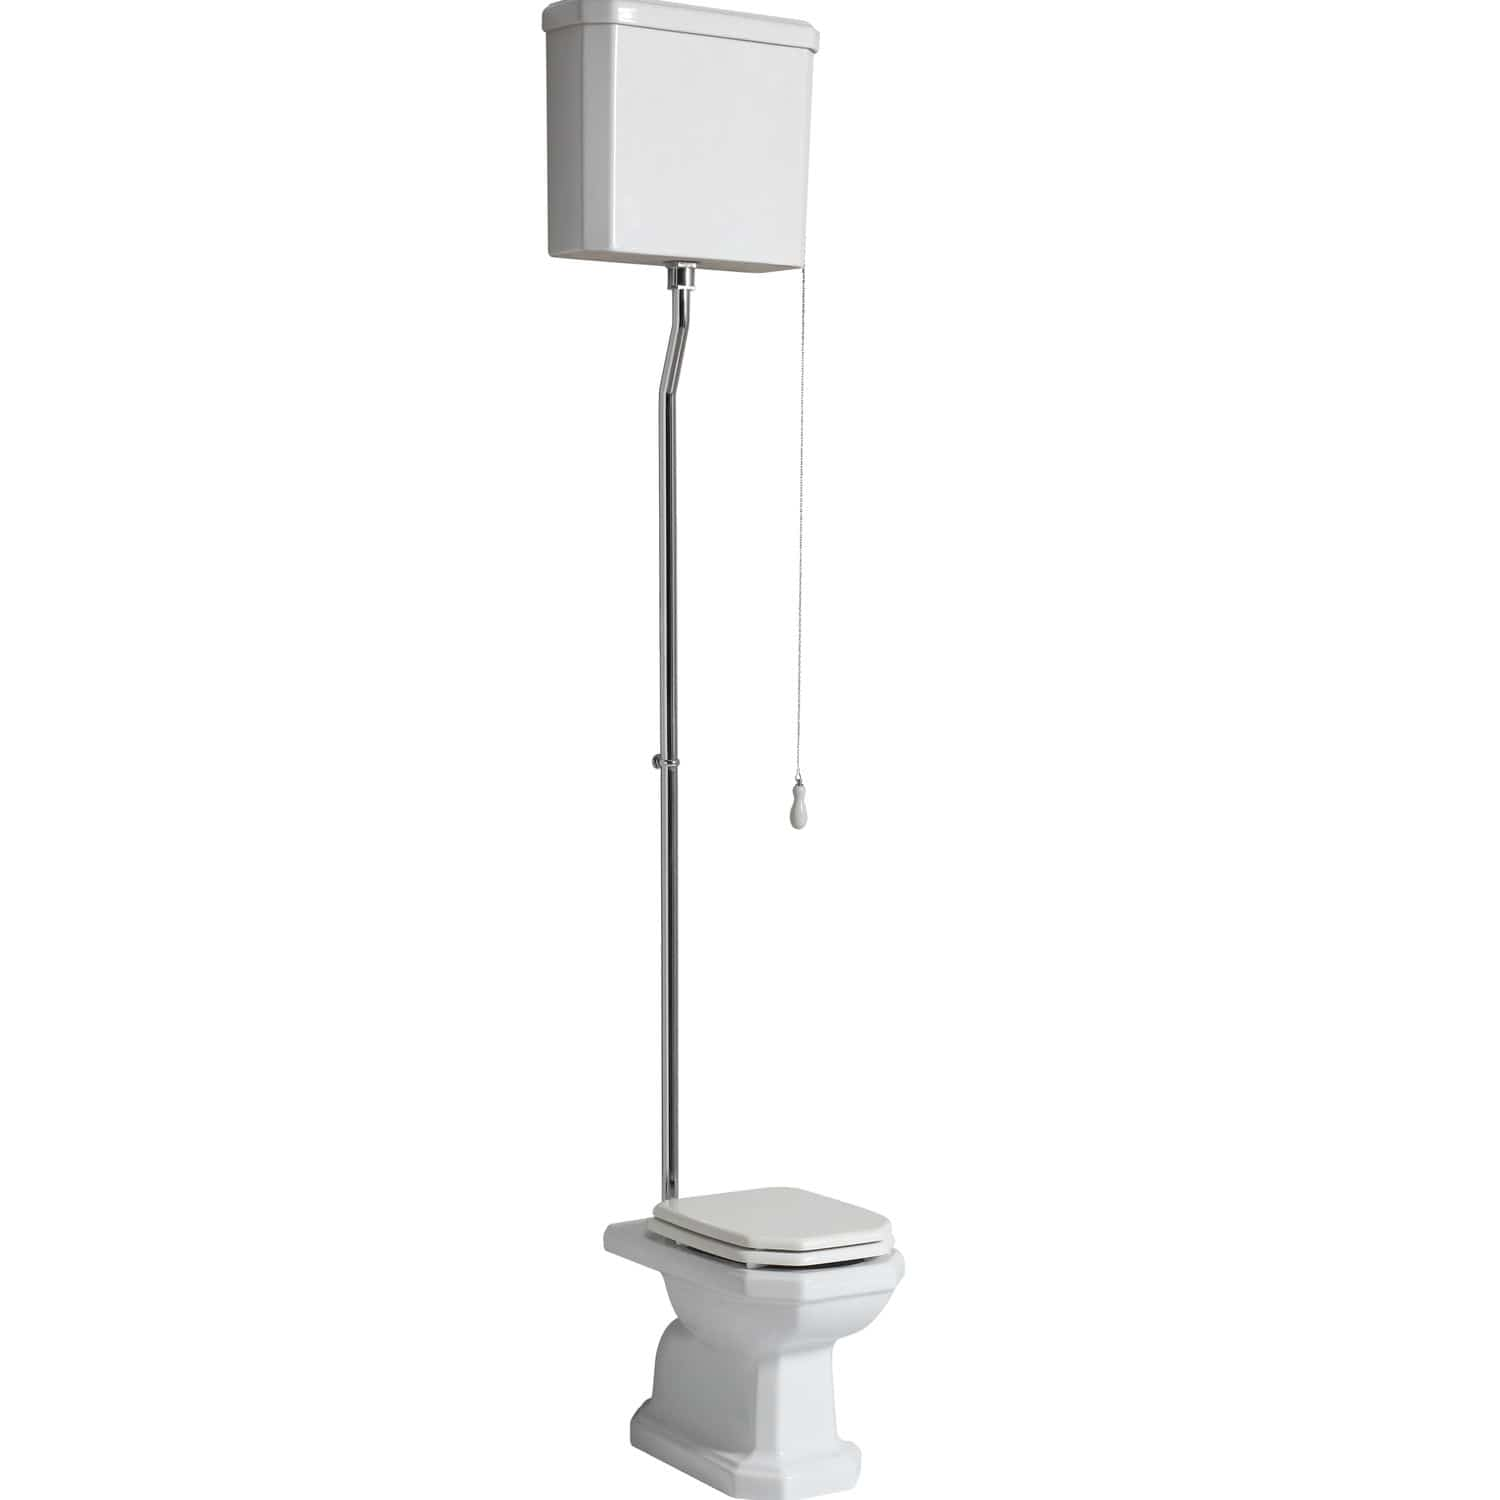 free standing toilet ceramic with high tank provence 700